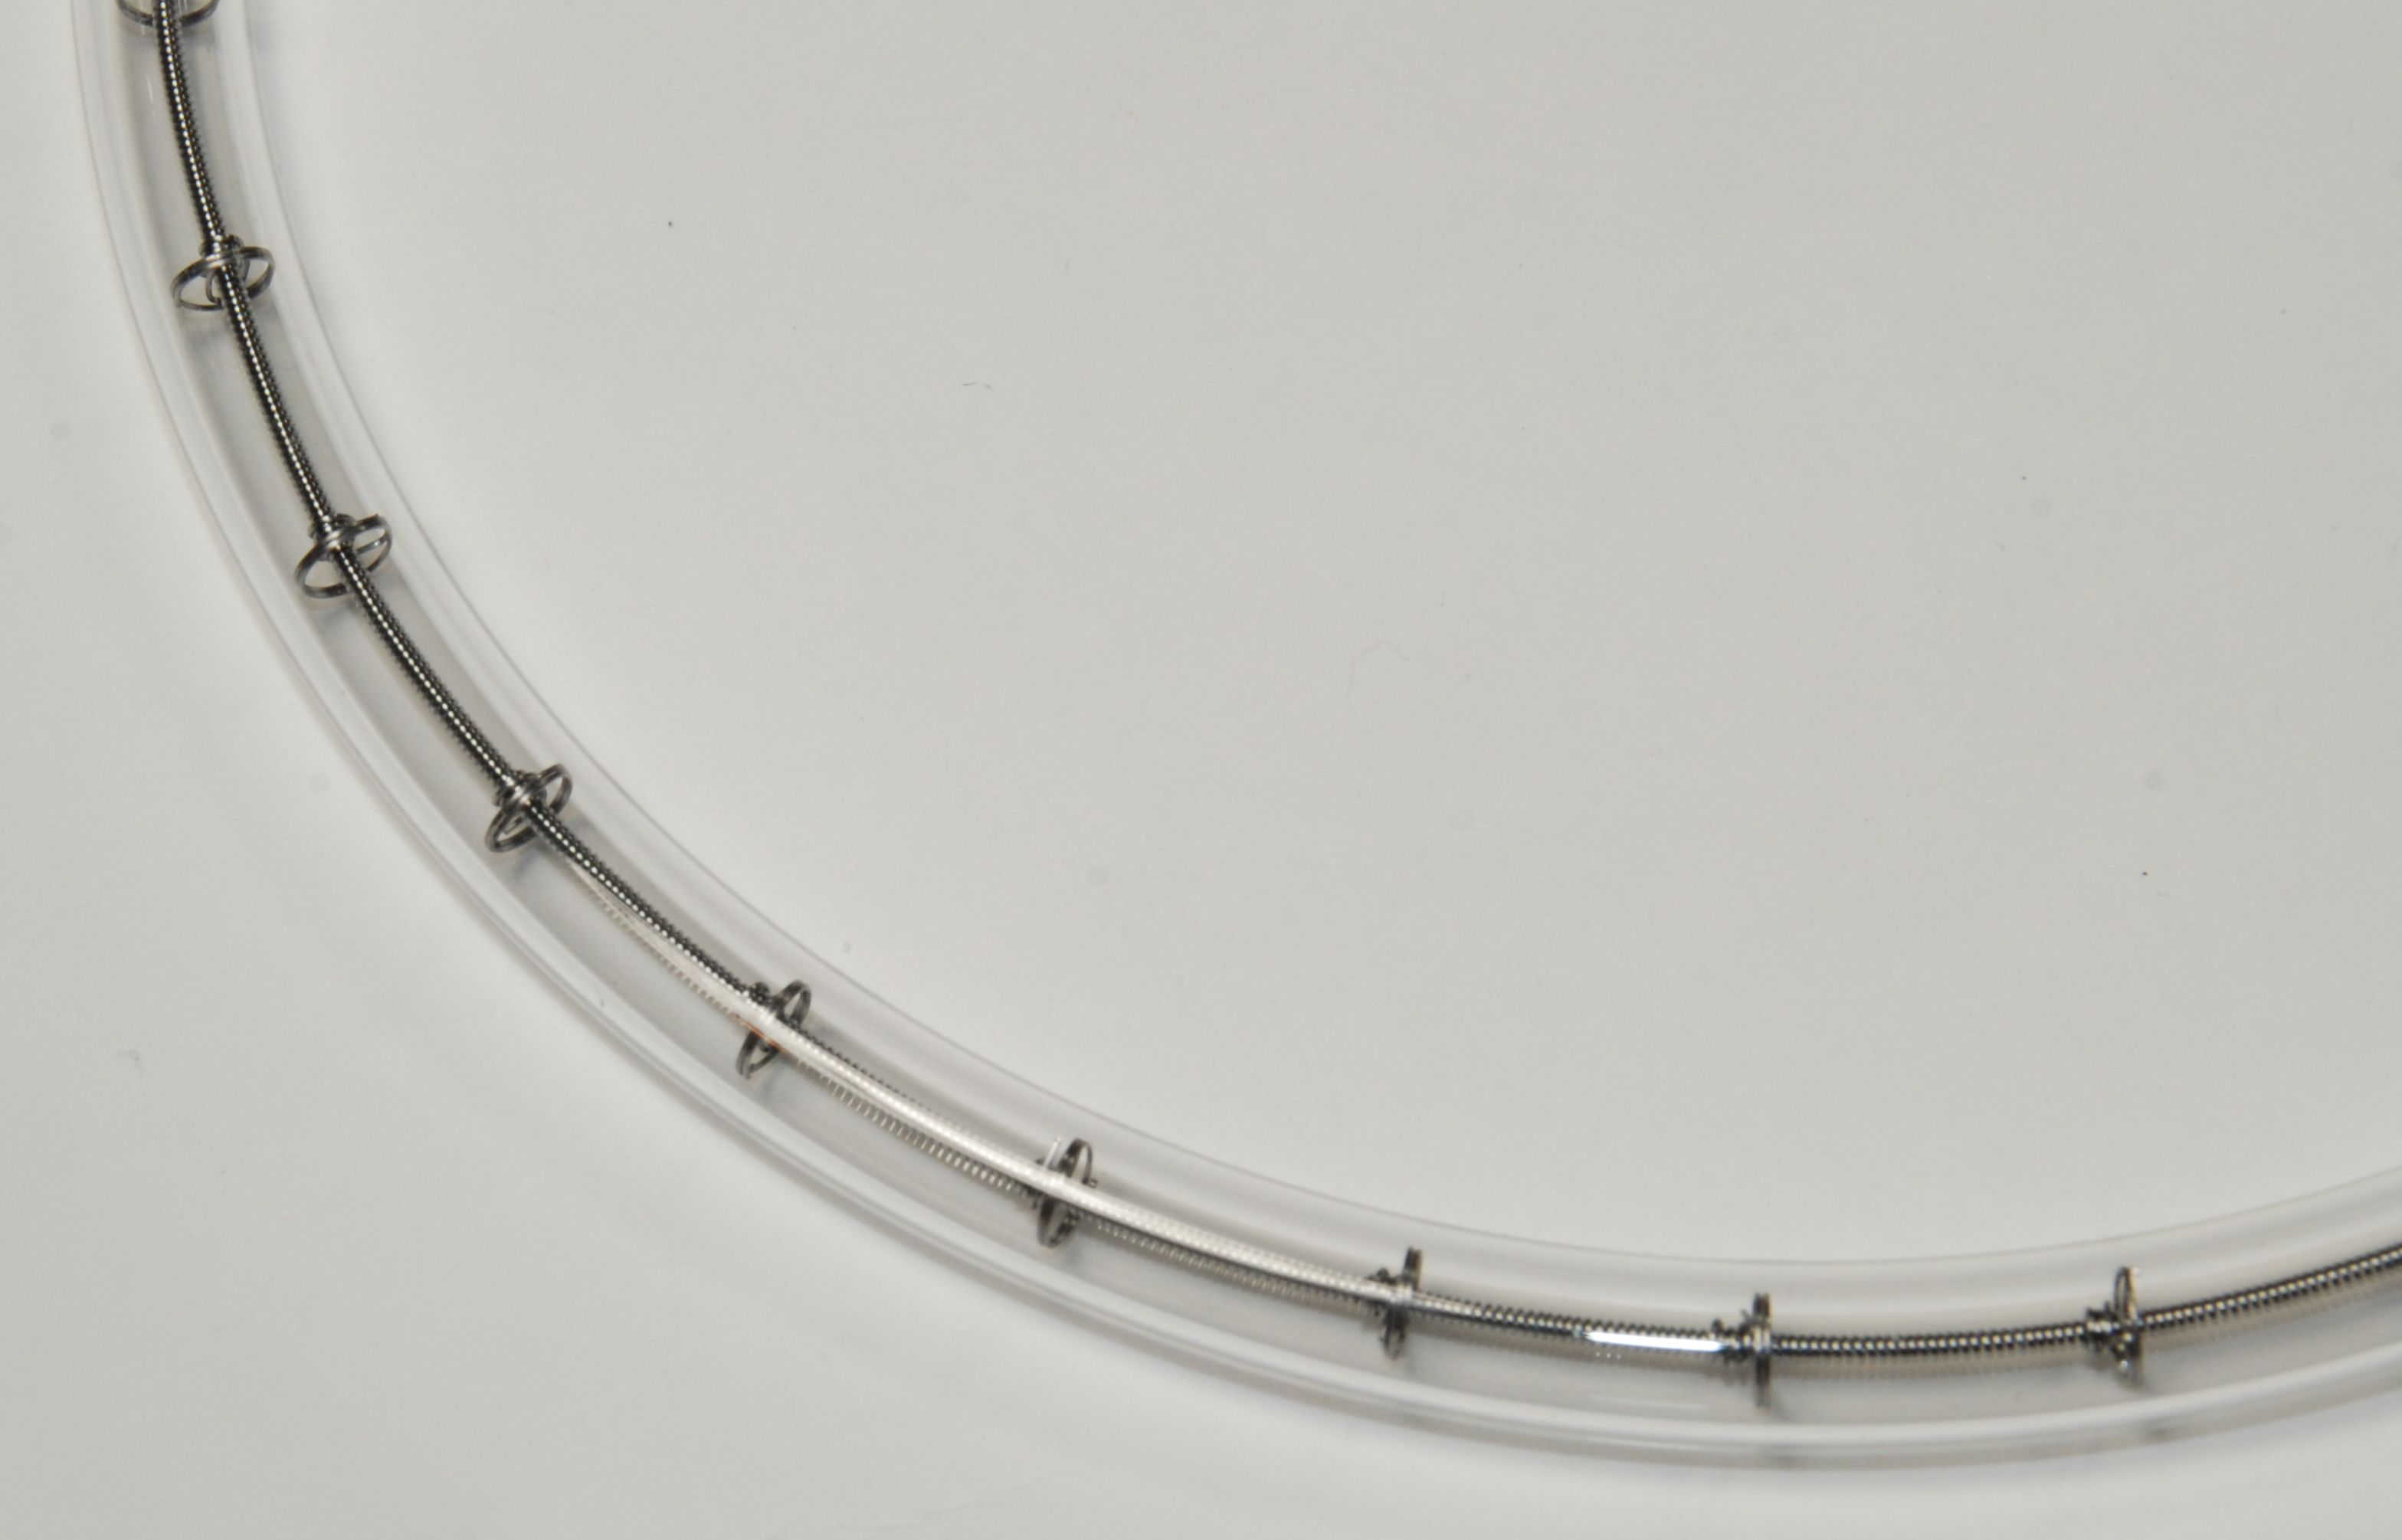 Tungsten Filament of Omega IR Lamp